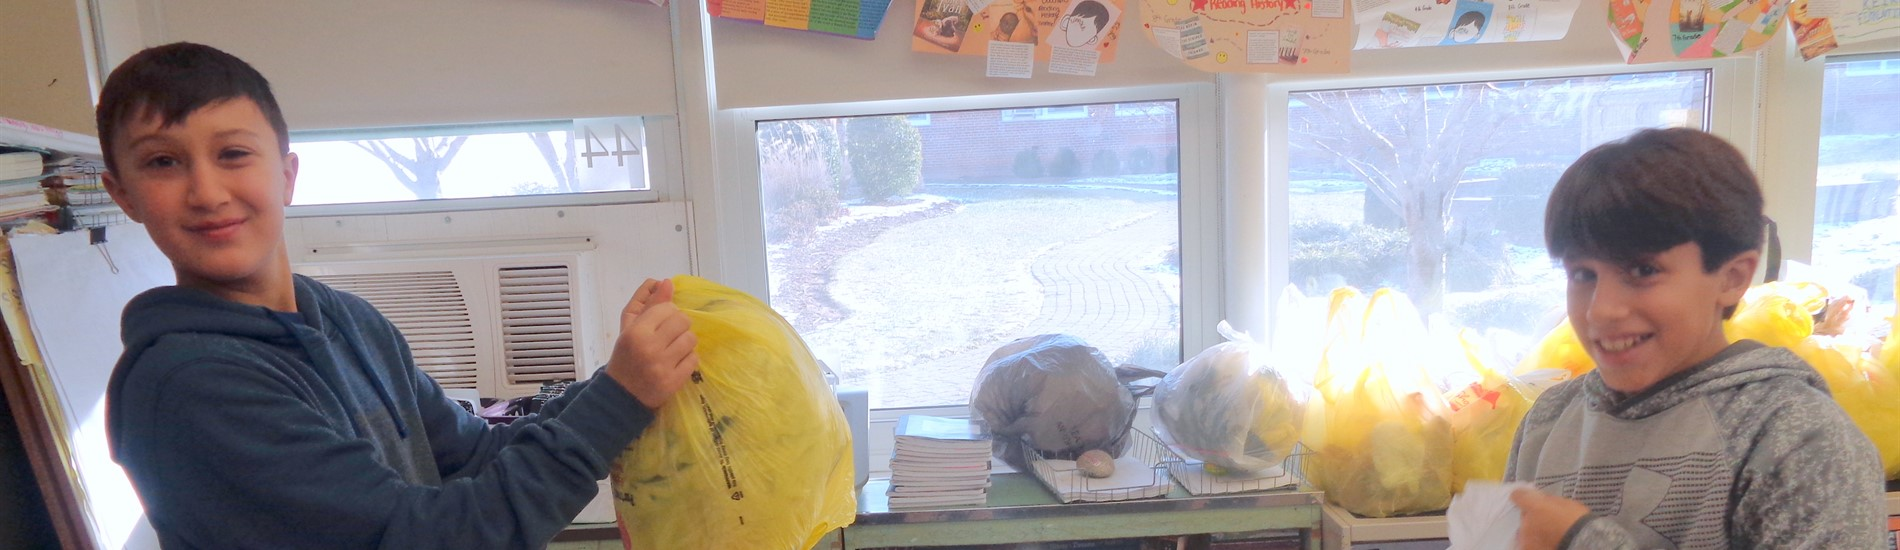 MLK Service Activity - Save the Planet - collecting plastic bags competition